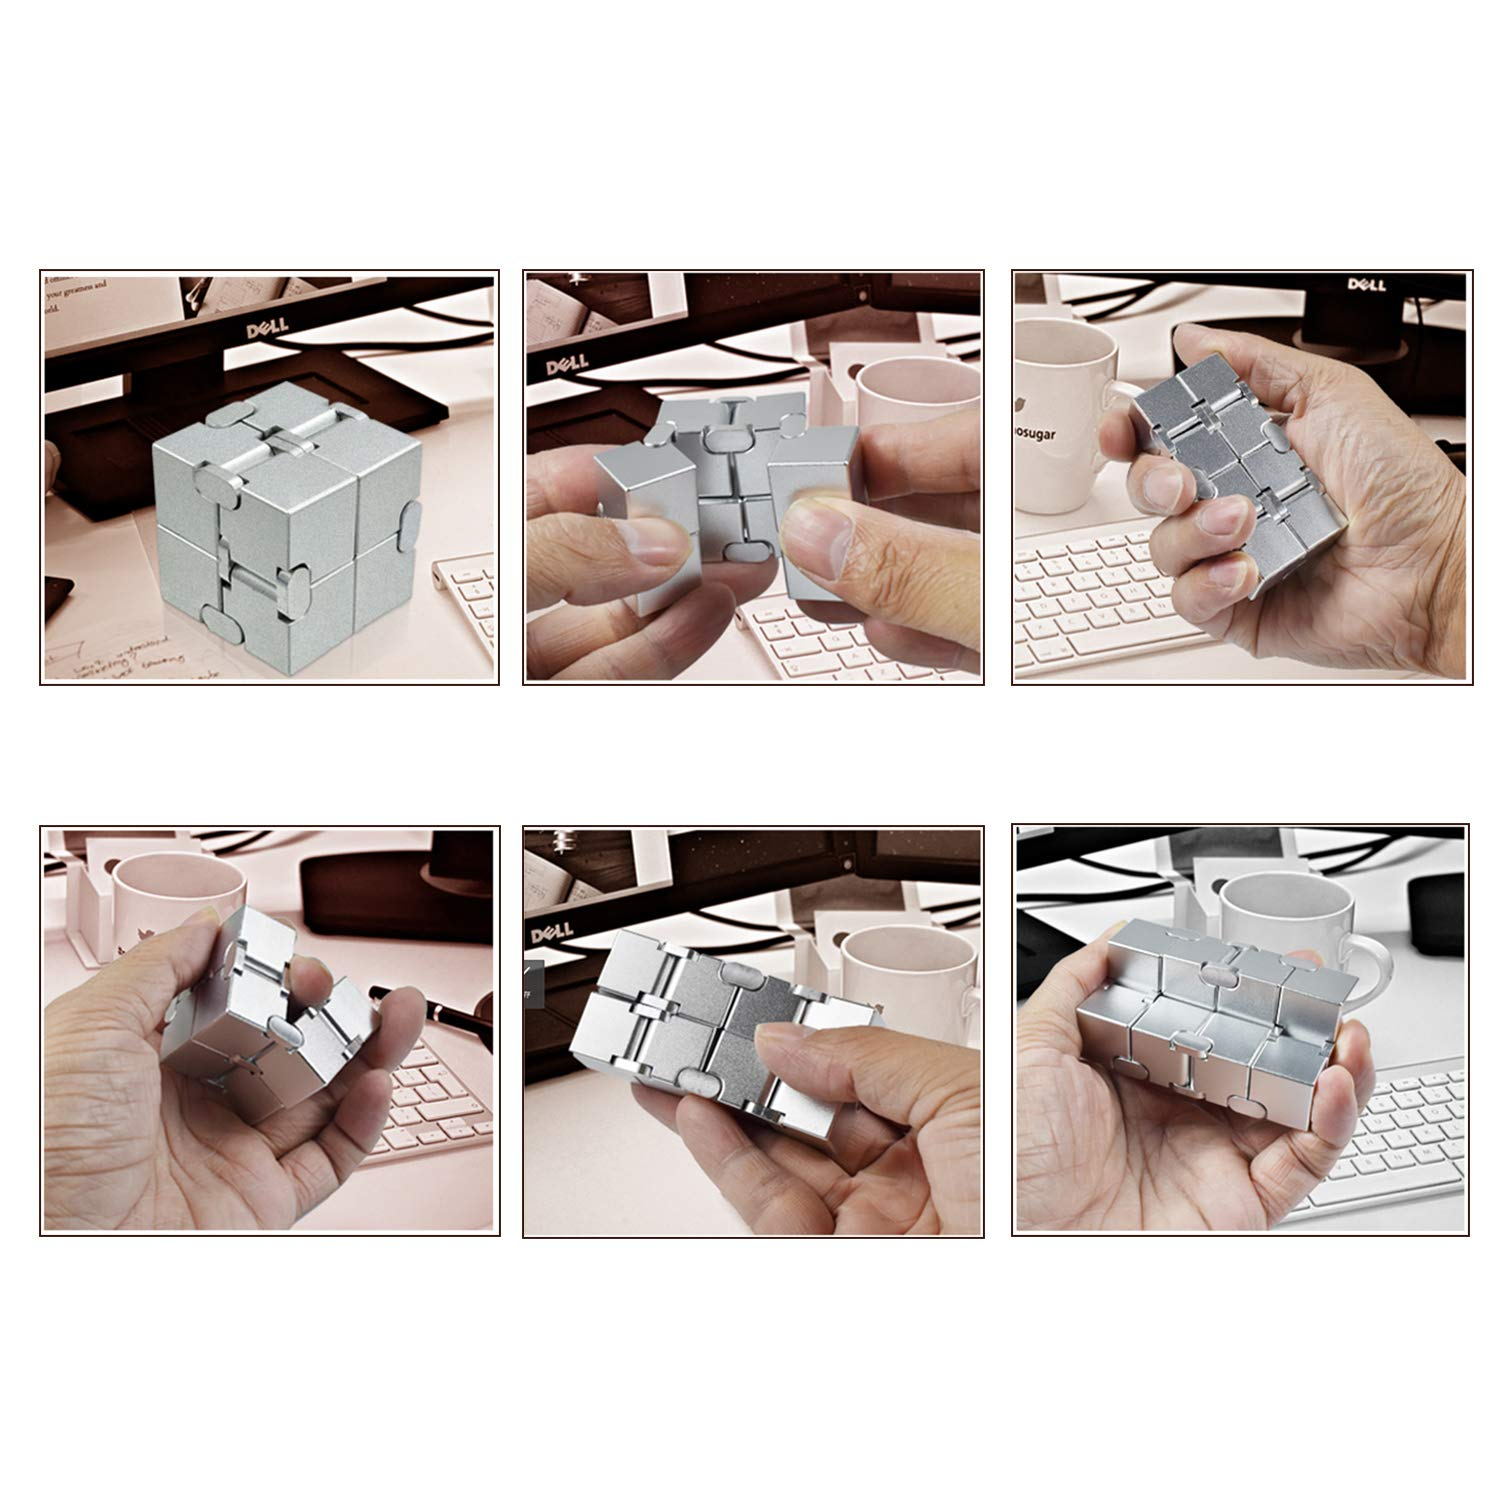 Xtozon Infinity Cube New Version, Aluminum Metal Fidget Finger Cube Toys - Office Decompression Toys Prime for Stress and Anxiety Relief/ADHD, Gifts for Adult and Kids, Cool Stuff. by Xtozon (Image #5)